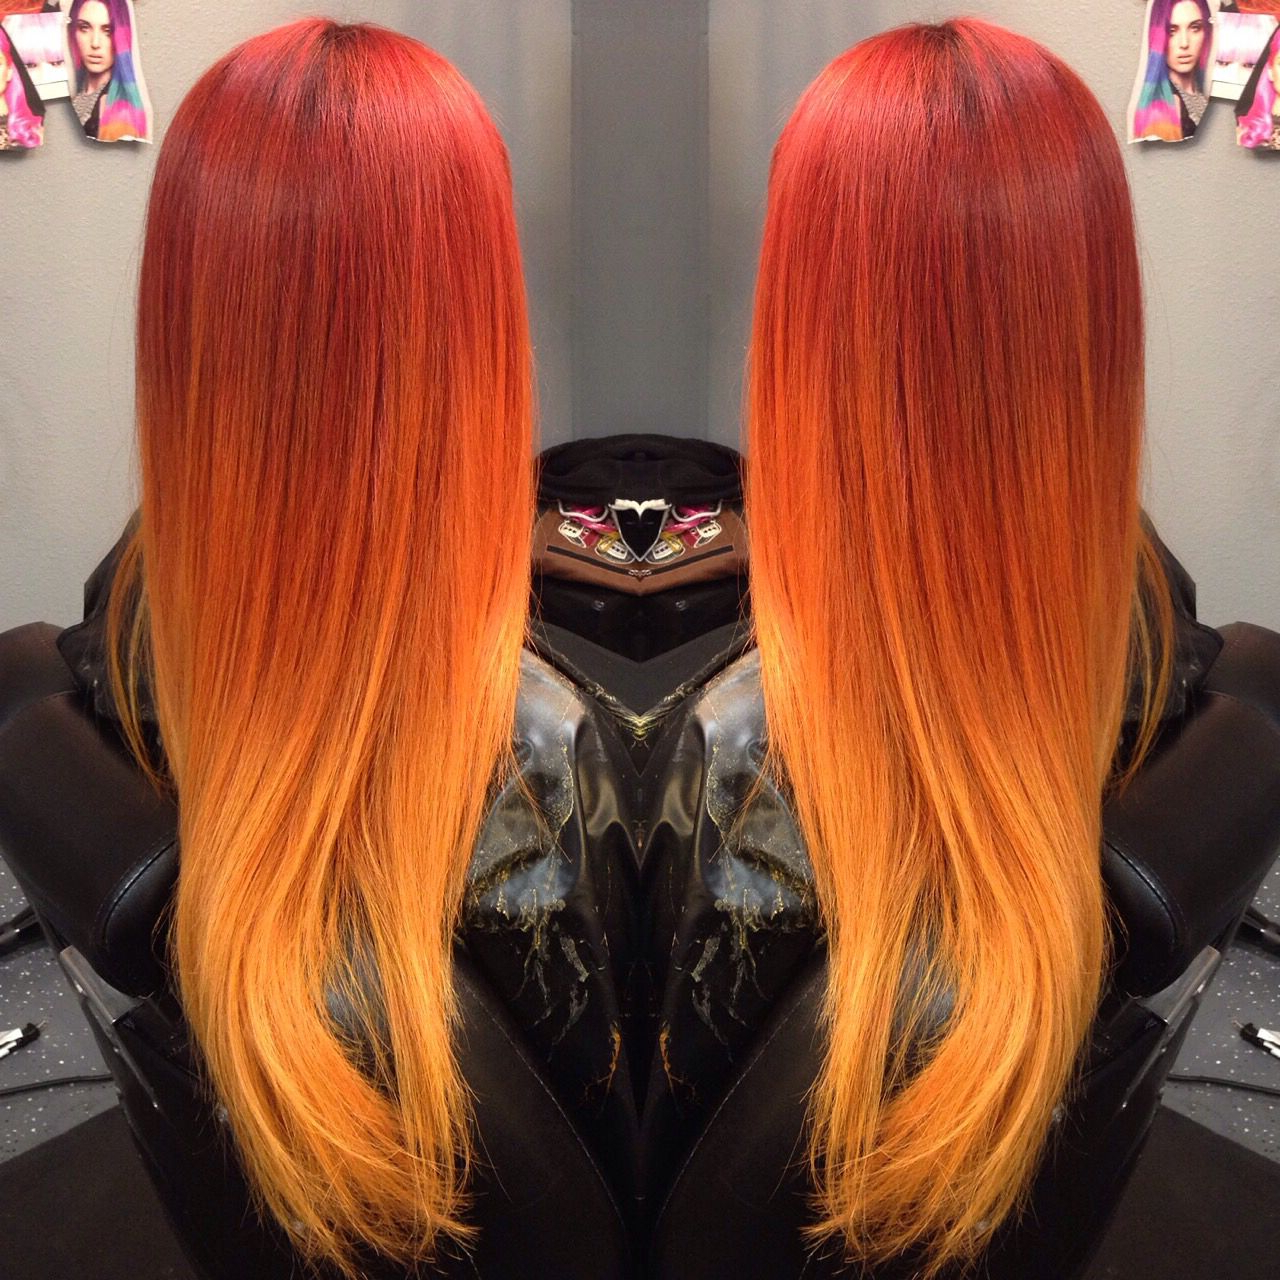 Famous Red And Yellow Highlights In Braid Hairstyles With Beautiful Fiery Red To Orange To Yellow Ombré Using Only (View 4 of 20)